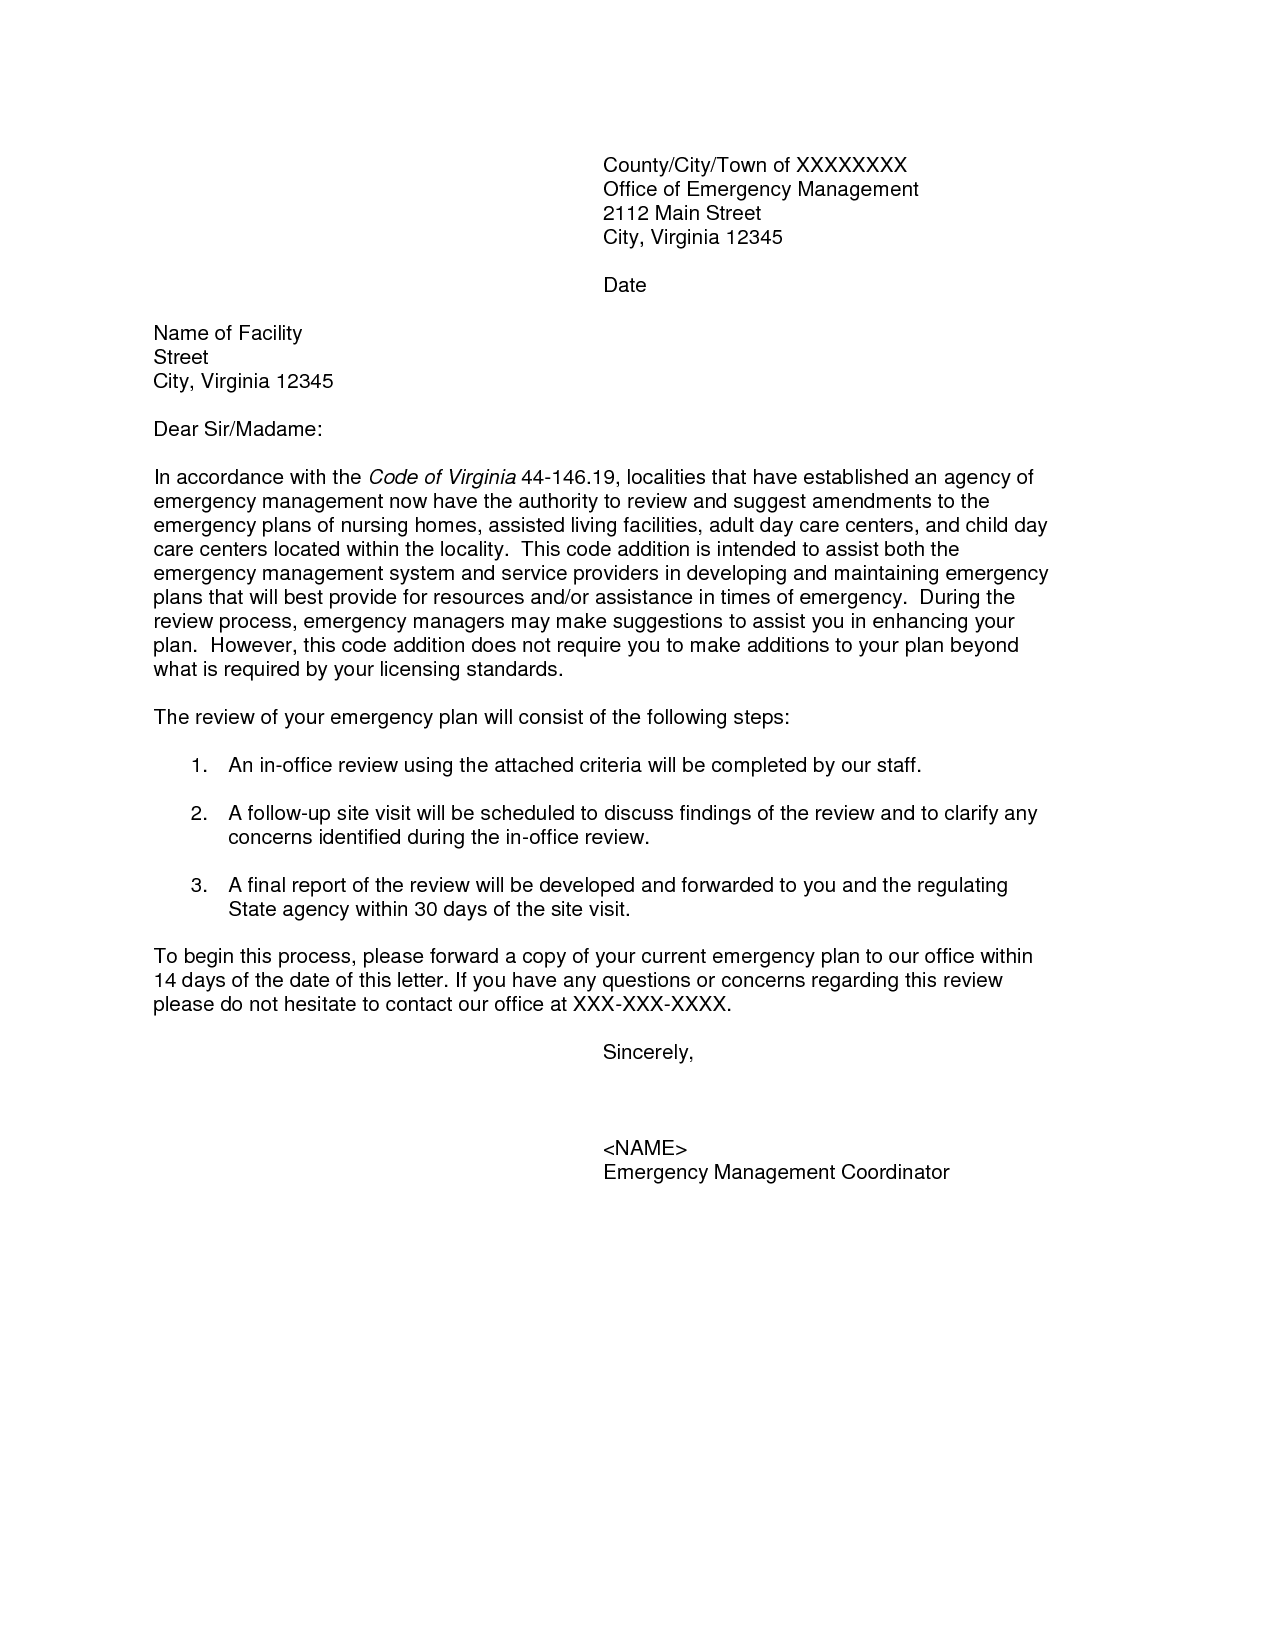 Sample Business Letter Excel Examples Of Reference Letters Request Letter  Sample